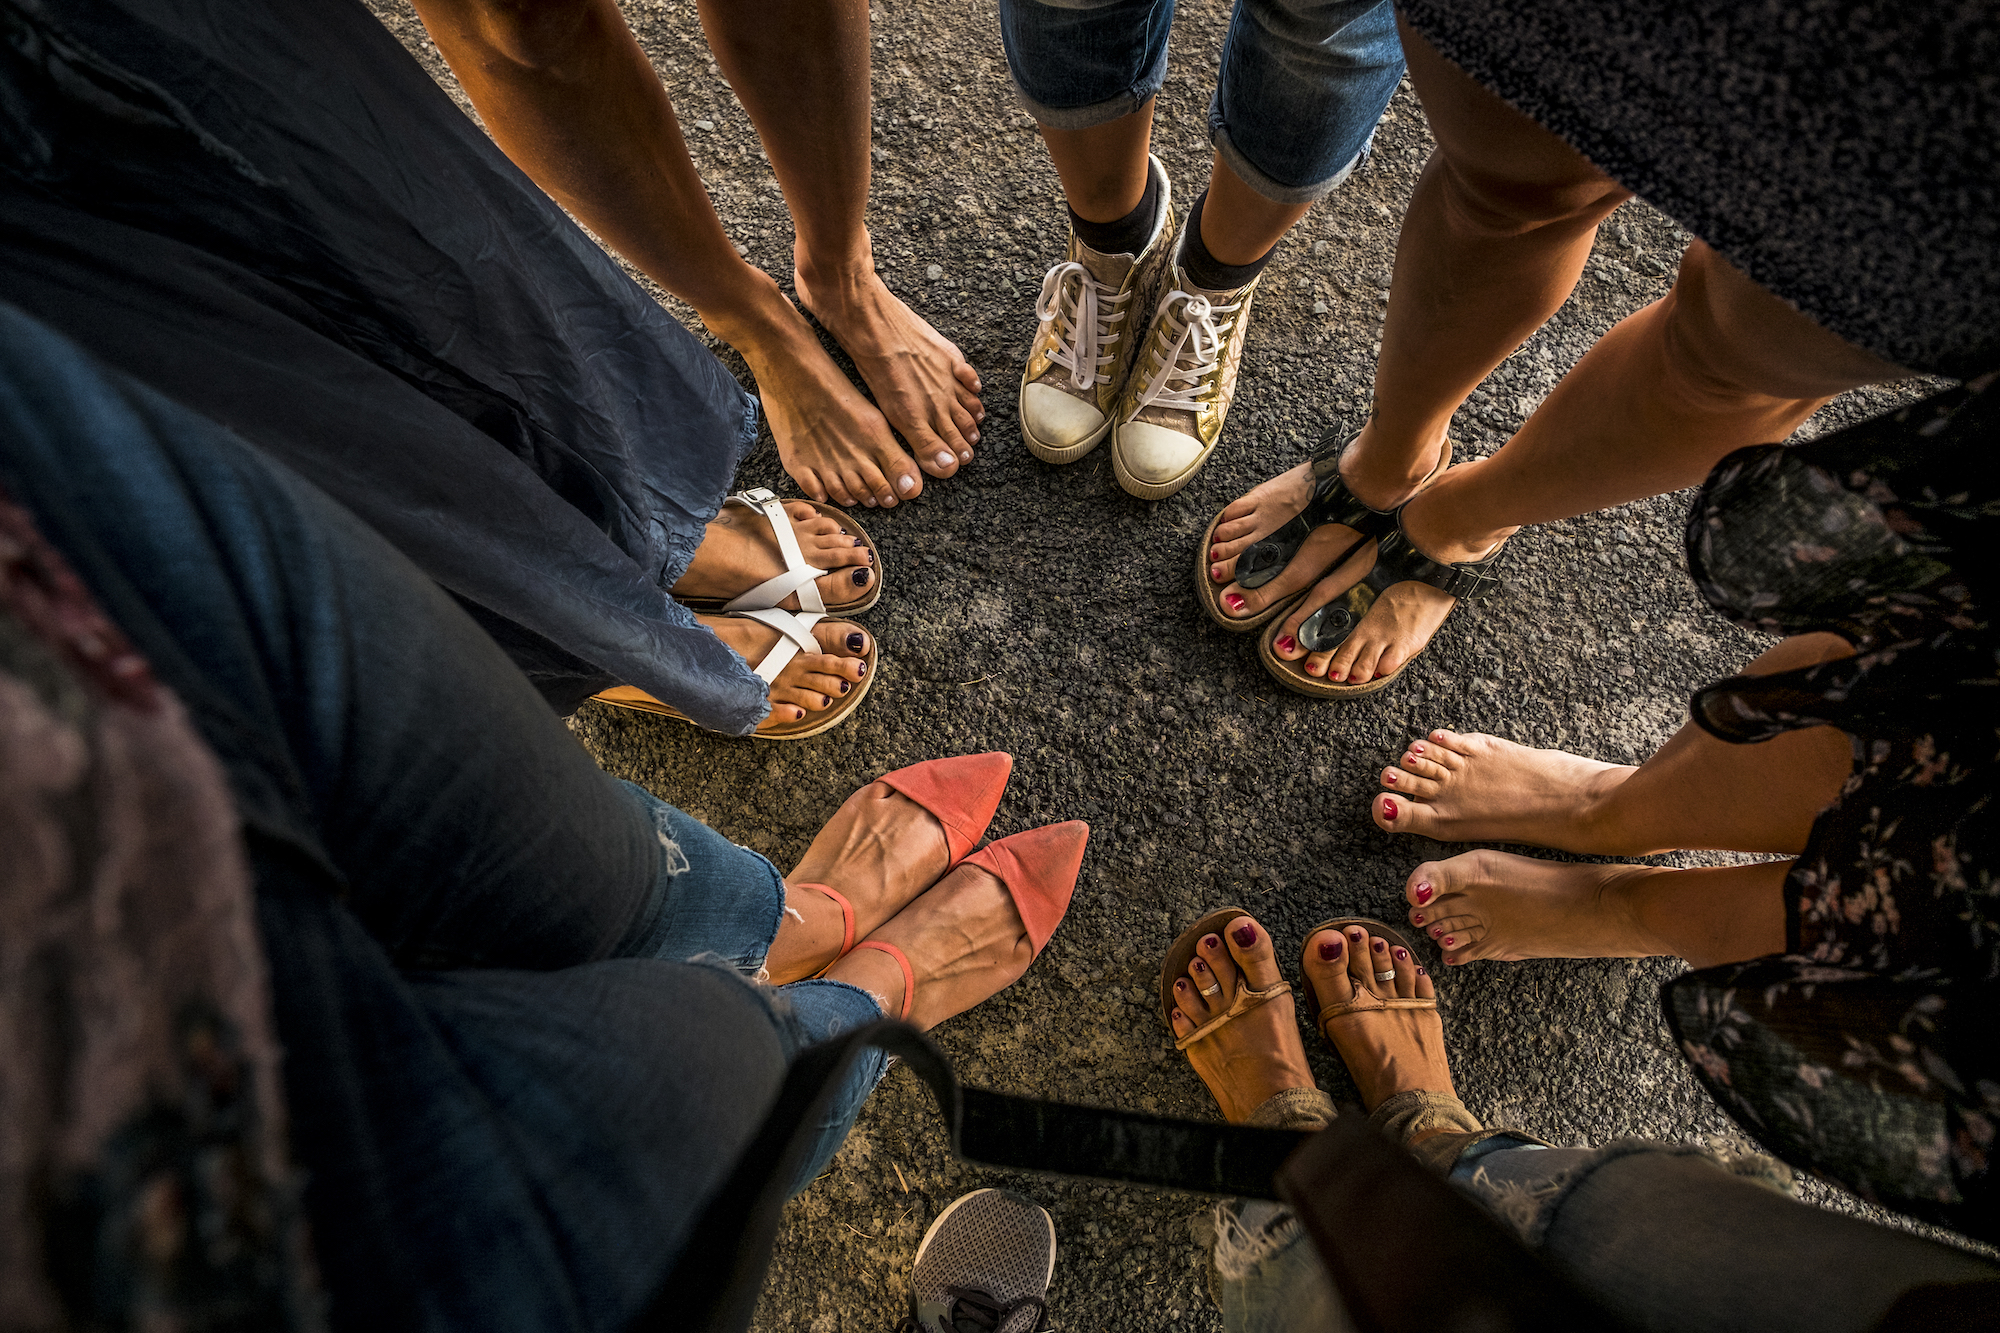 Above, view of caucasian women feet with shoes - spring and summer concept of friendship together outdoor after lockdown quarantine